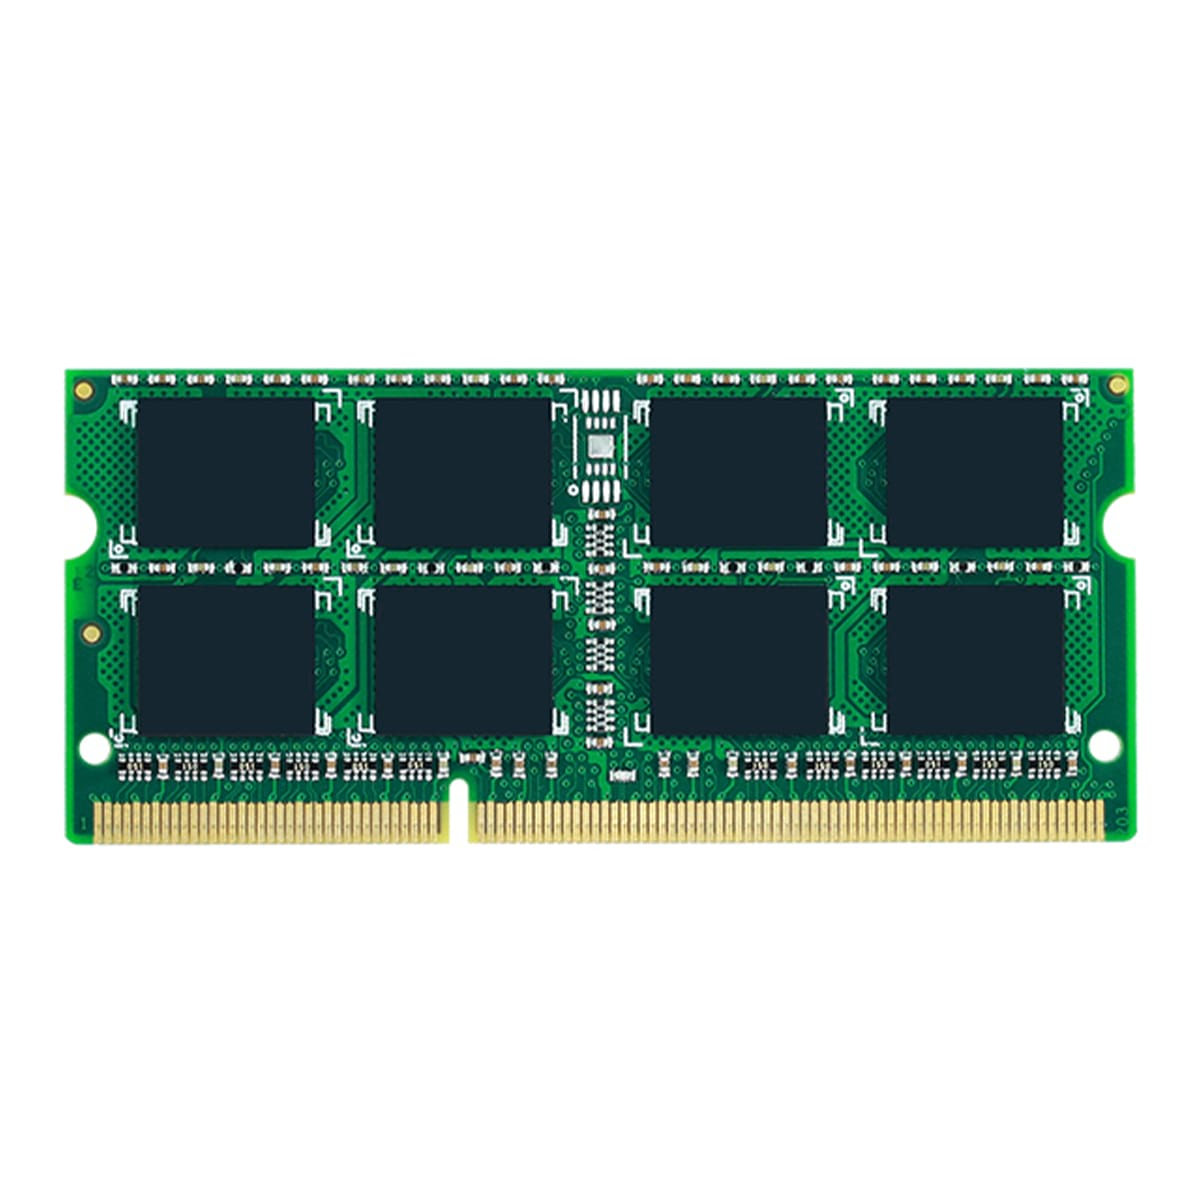 4GB DDR3-1333 PC3-10600 x8 16 Chip Non-ECC Unbuffered 204 Pin 1.5V CL=9 Memory